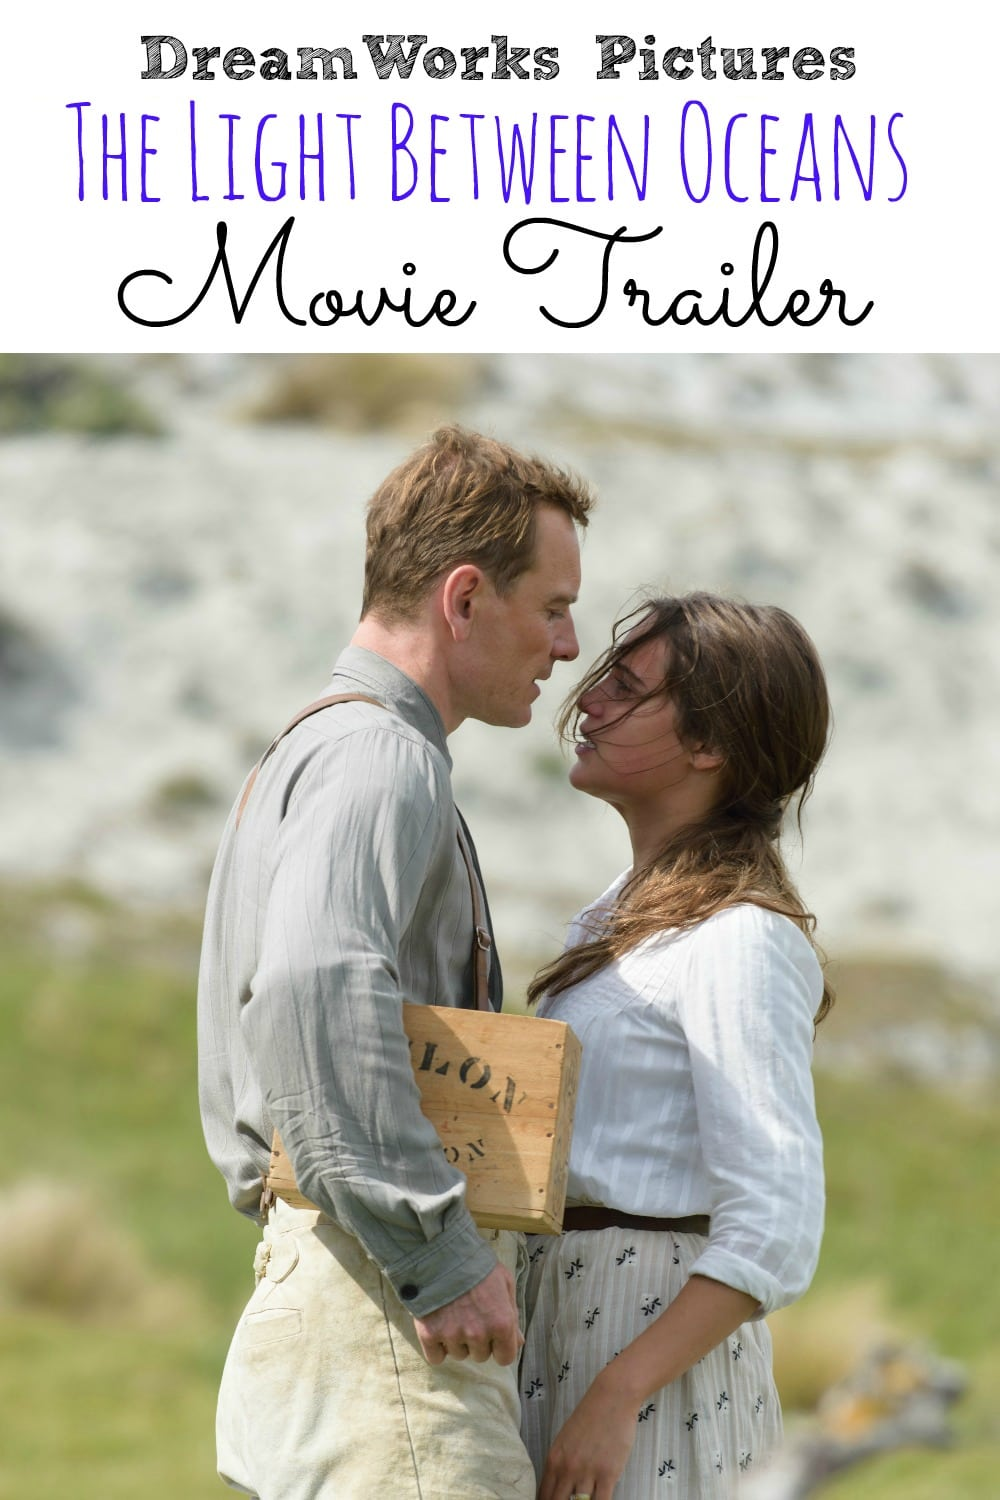 DreamWorks The Light Between Two Oceans Movie Trailer